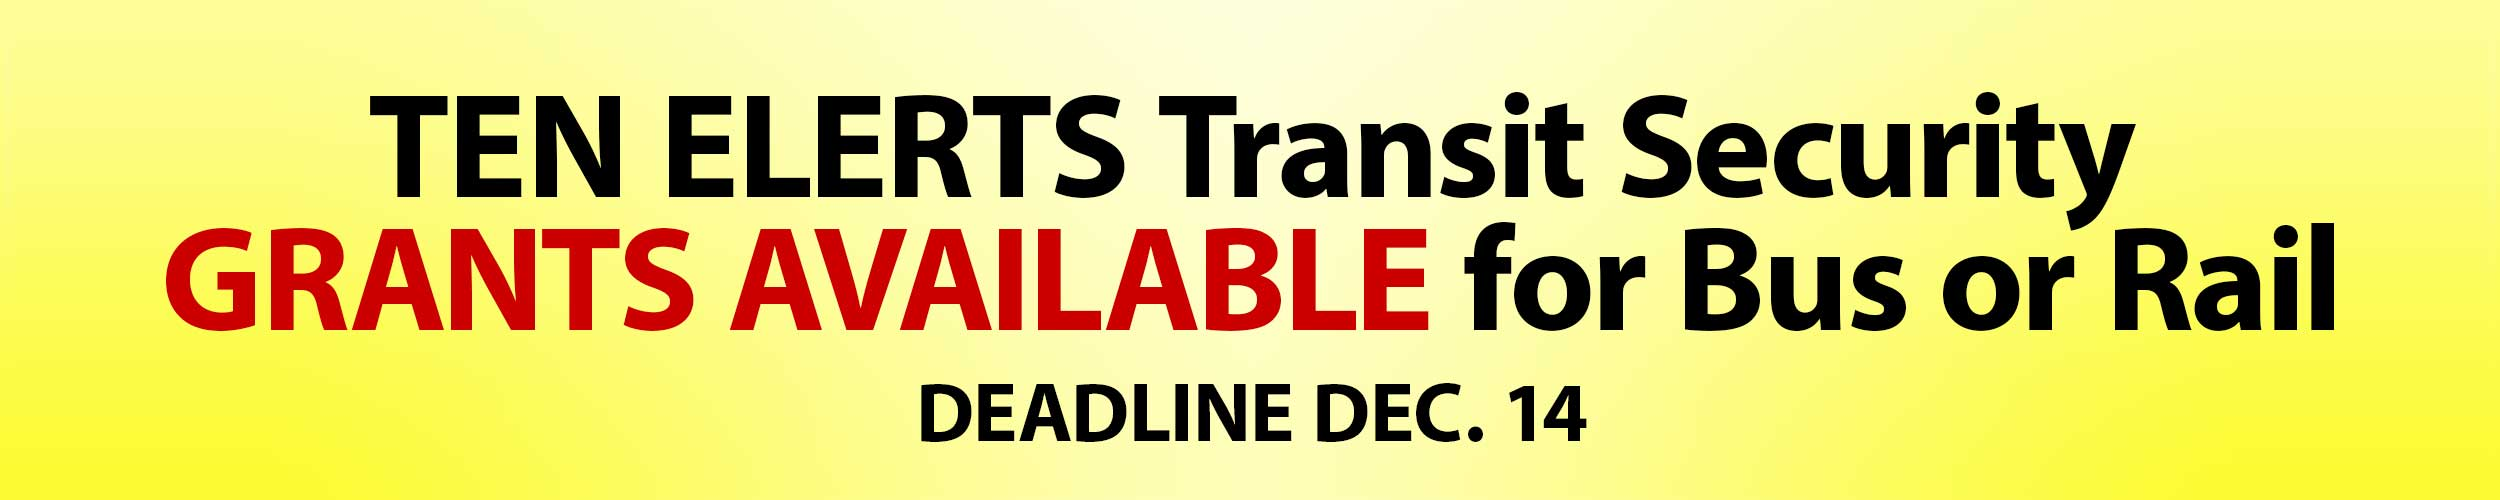 Ten ELERTS Transit SecurityGRANTS Available for Bus or Rail Deadline Dec. 14